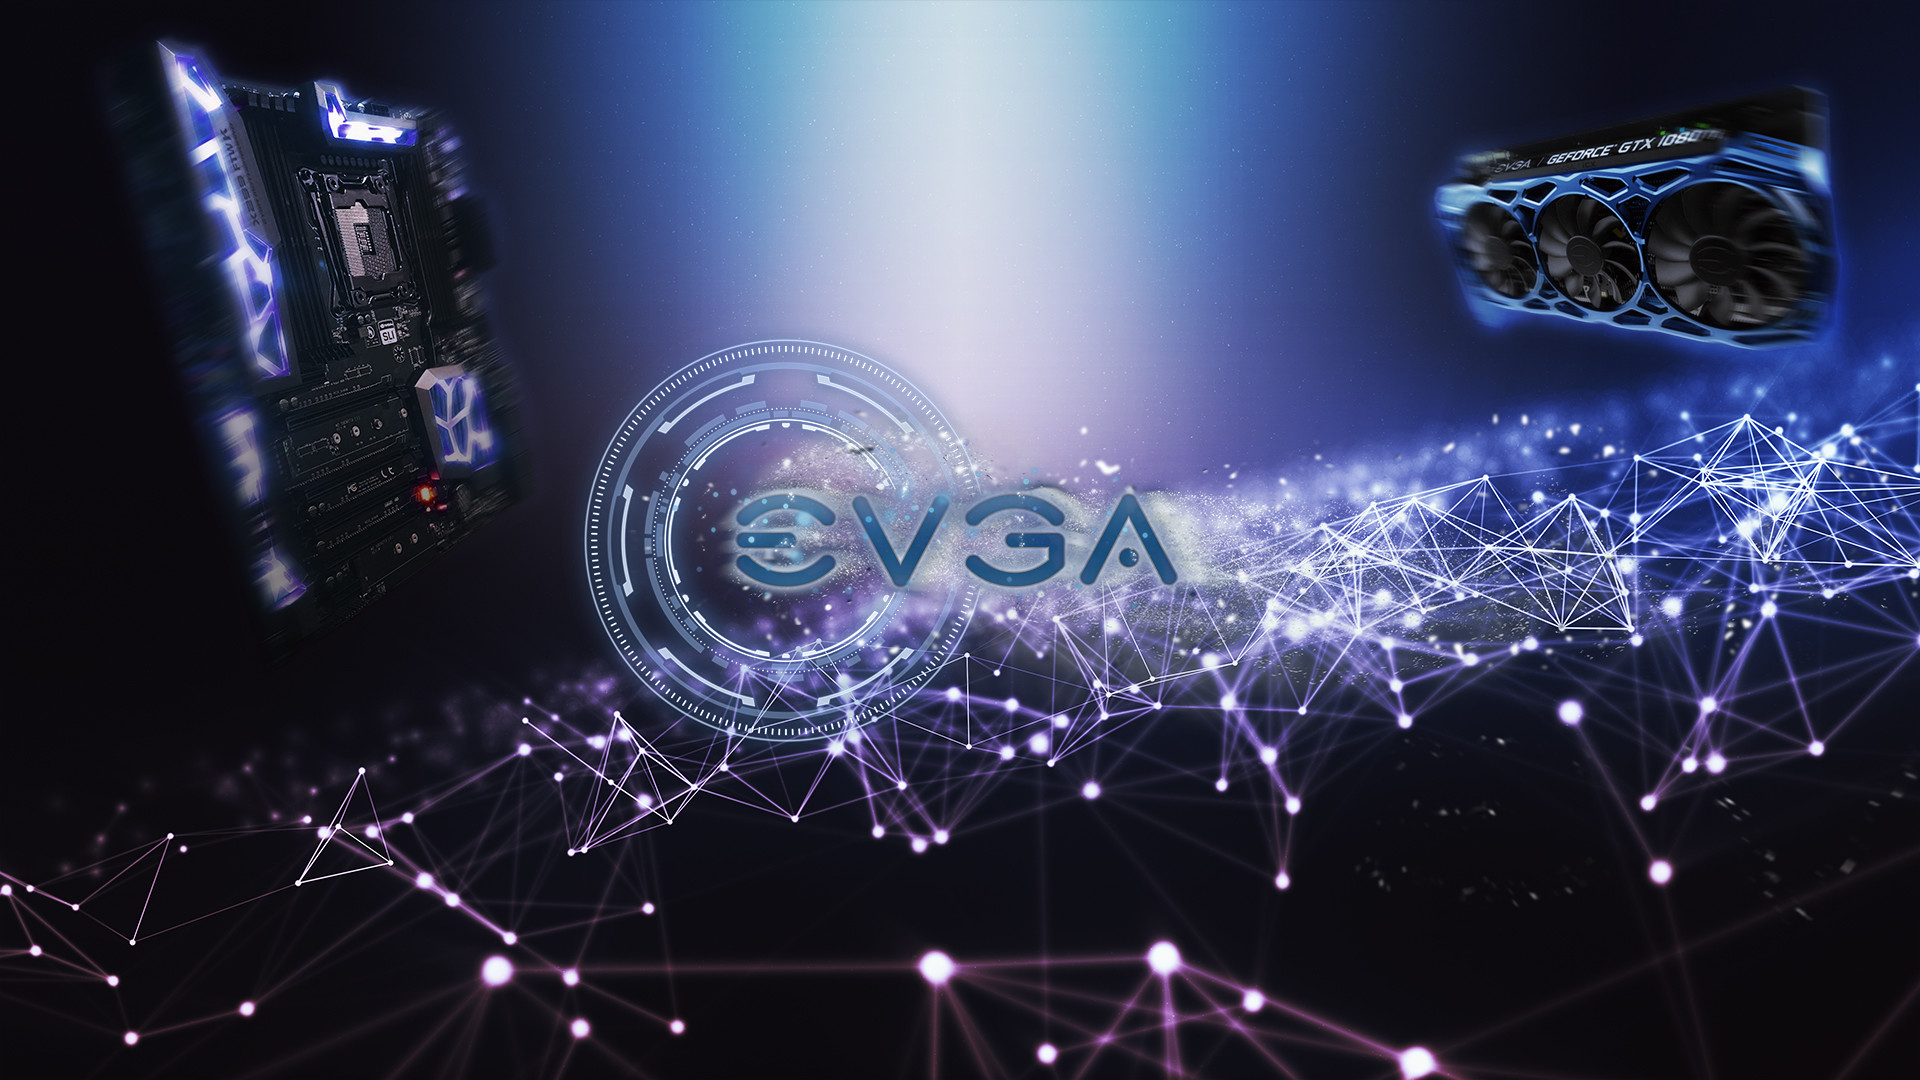 But when I see the winners who do not even have the EVGA logo that was  asked to add in their wallpaper, it's not a serious contests!